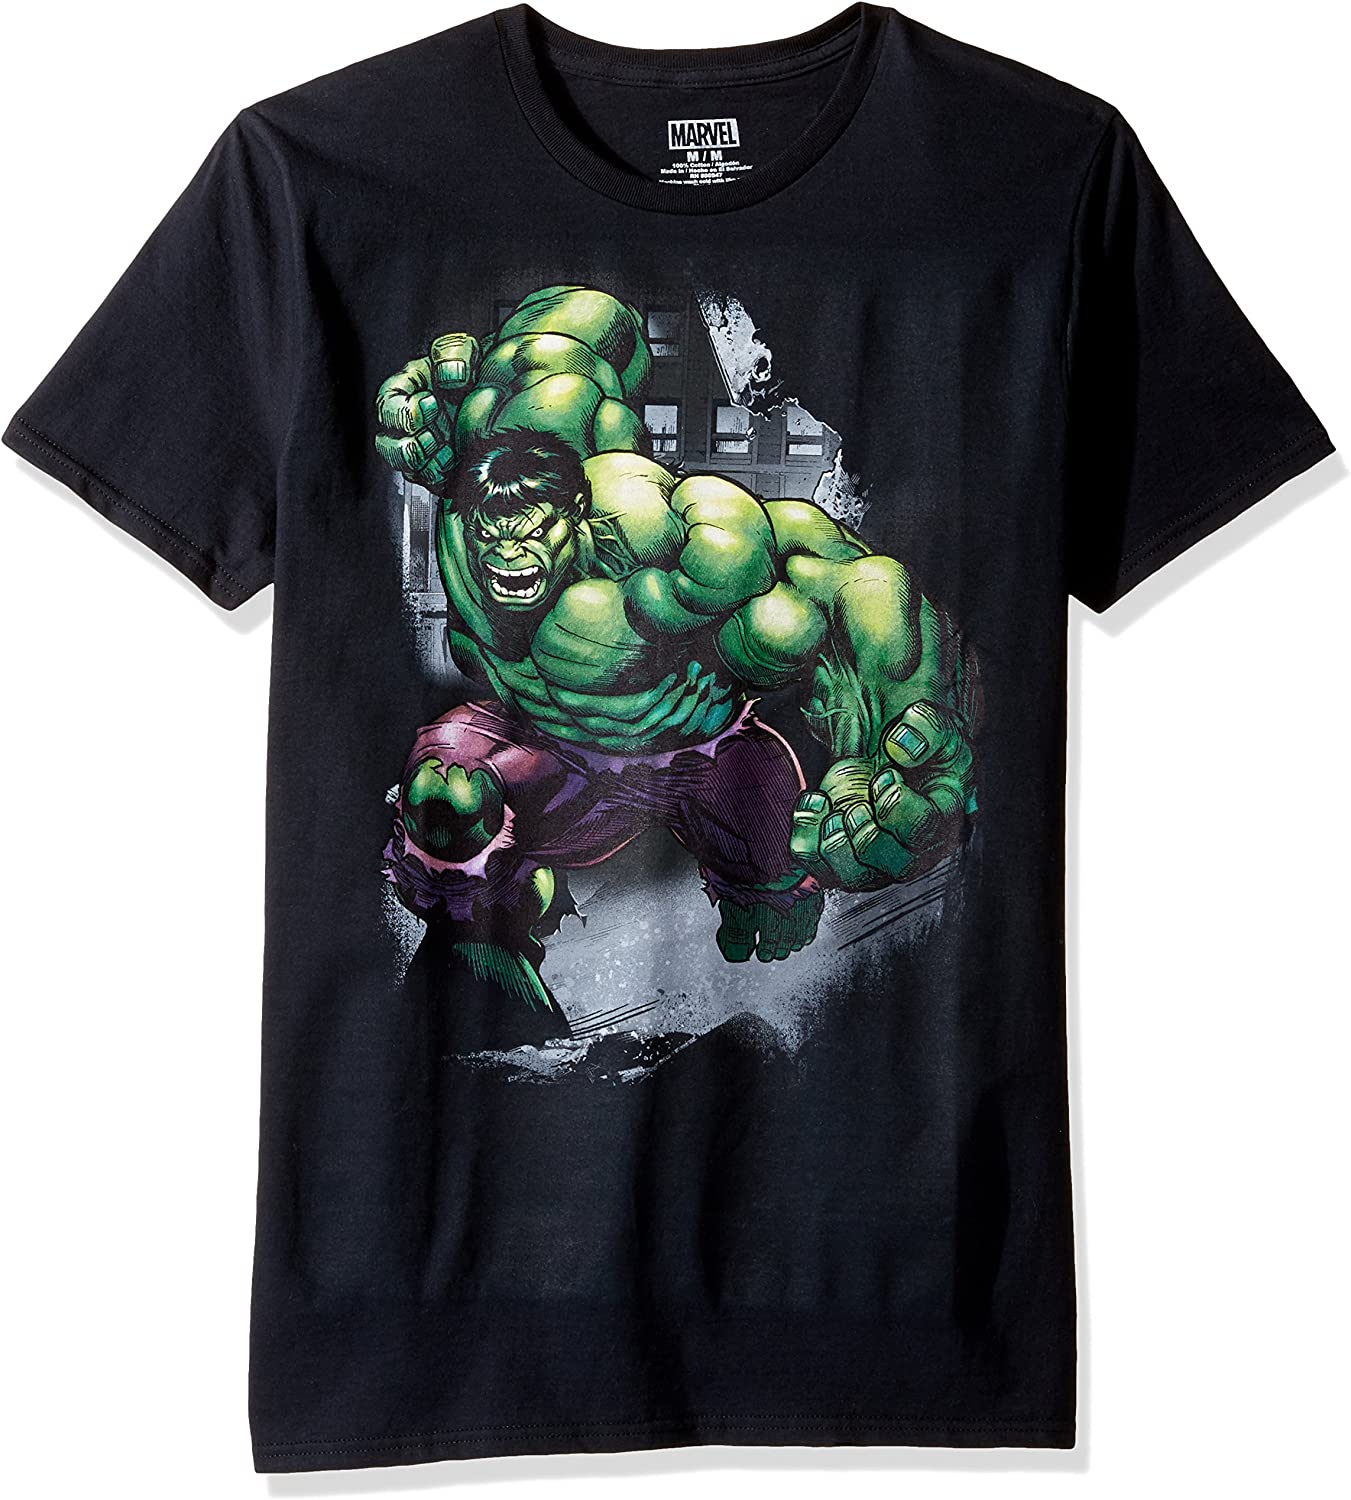 Officially Licensed Marvel Comics The Incredible Hulk Men/'s T-Shirt S-XXL Sizes